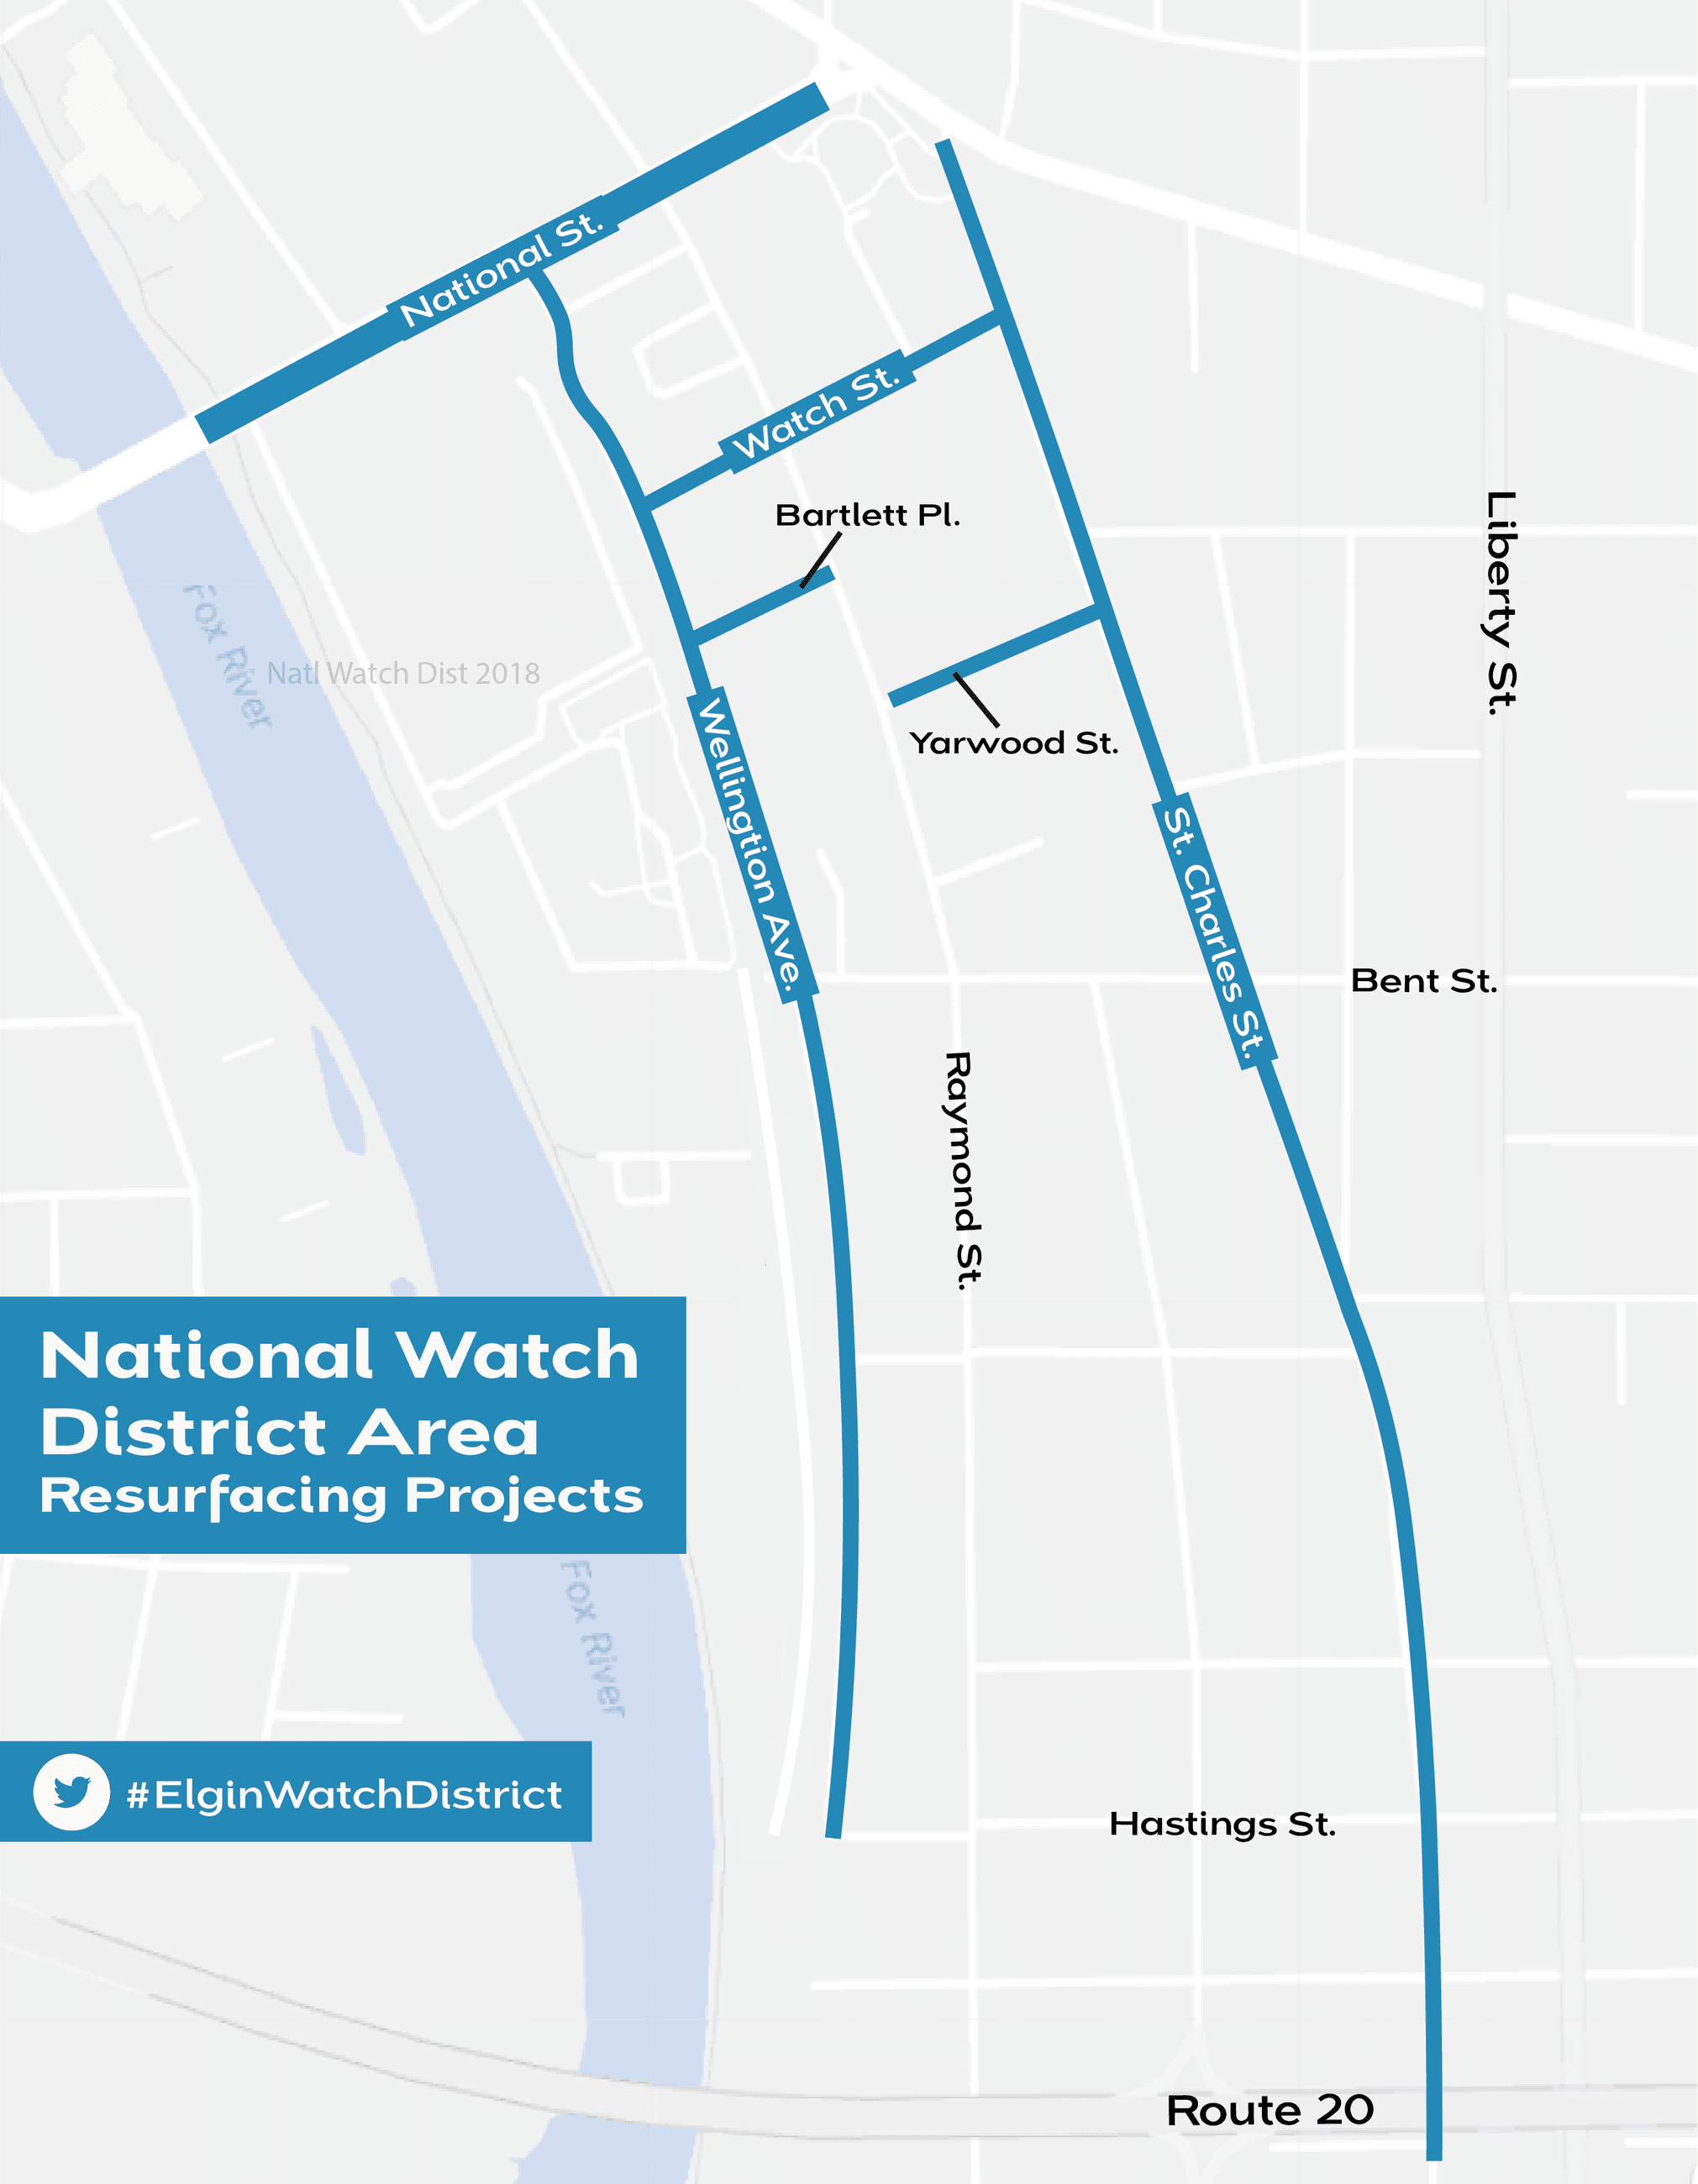 Elgin National Watch District resurfacing project map